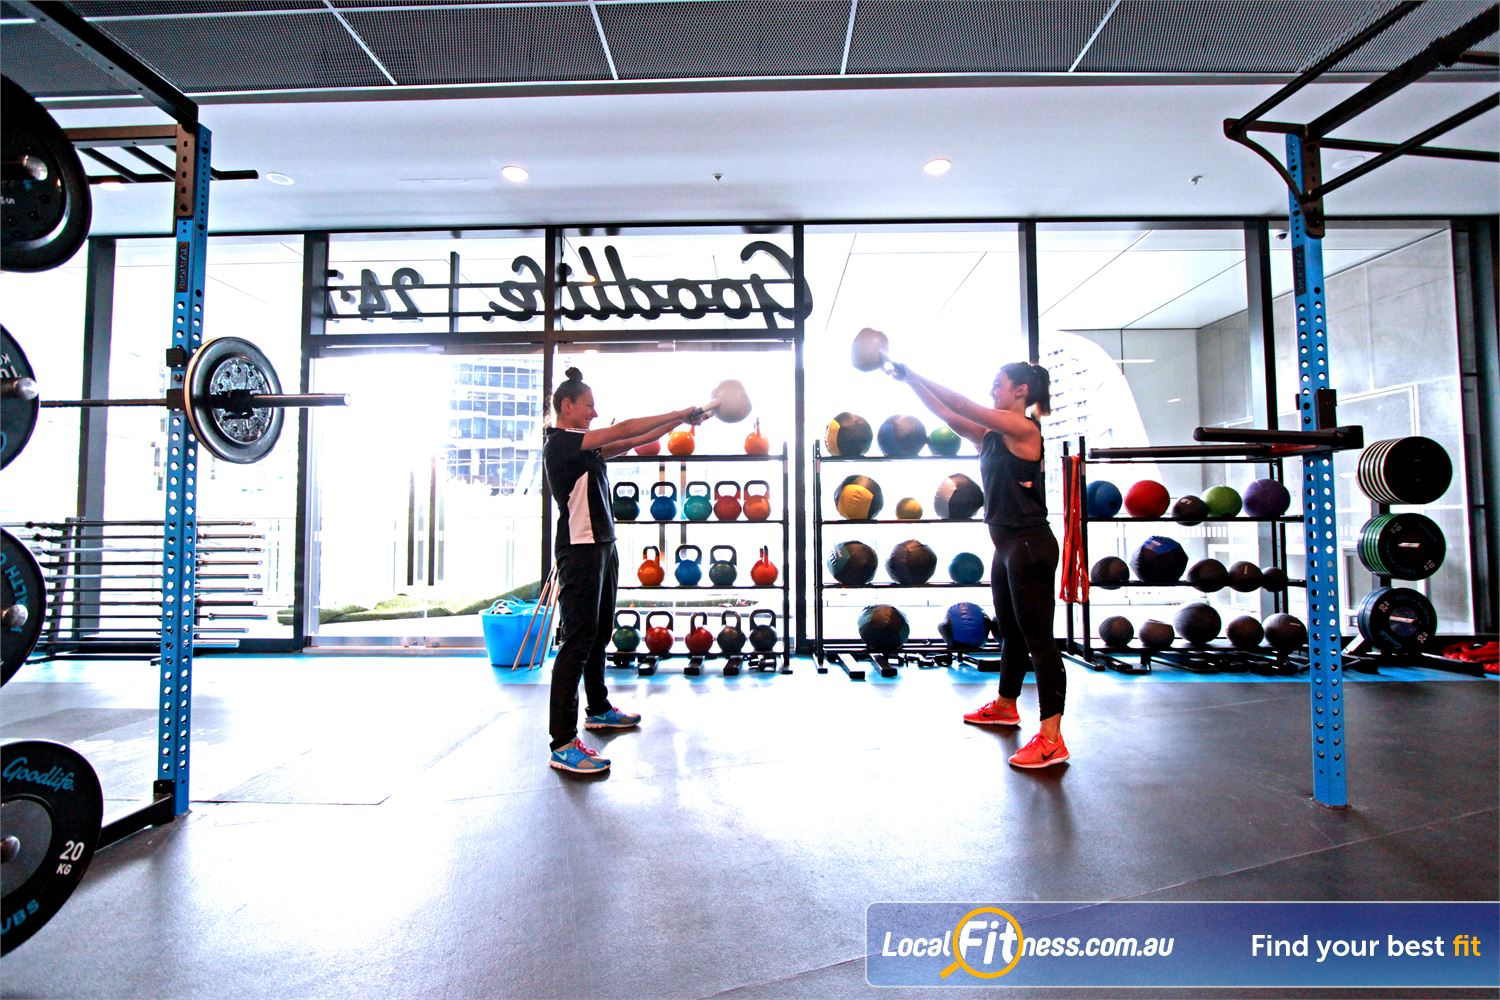 Goodlife Health Clubs Docklands Learn the correct training methods from our Docklands personal trainers.